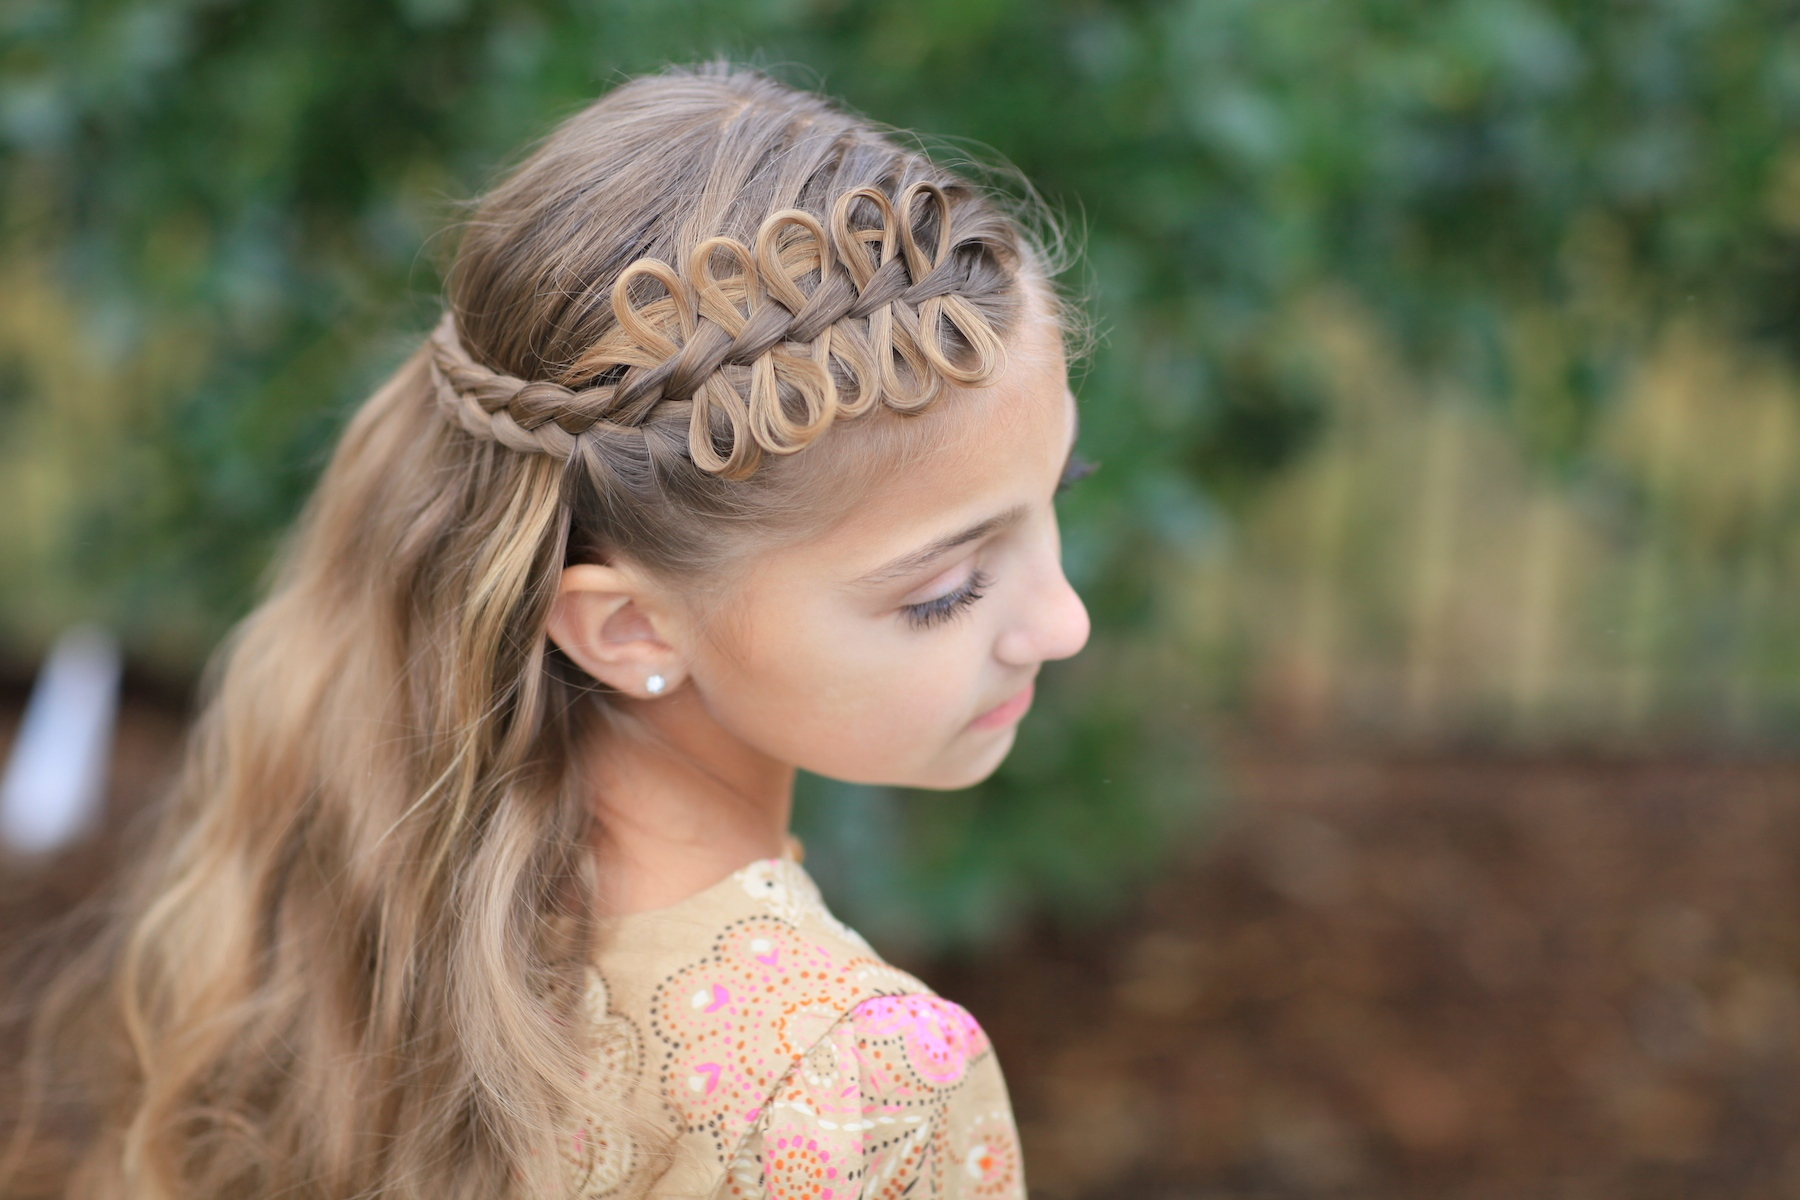 Today we want to show you the first official hairstyle tutorial for